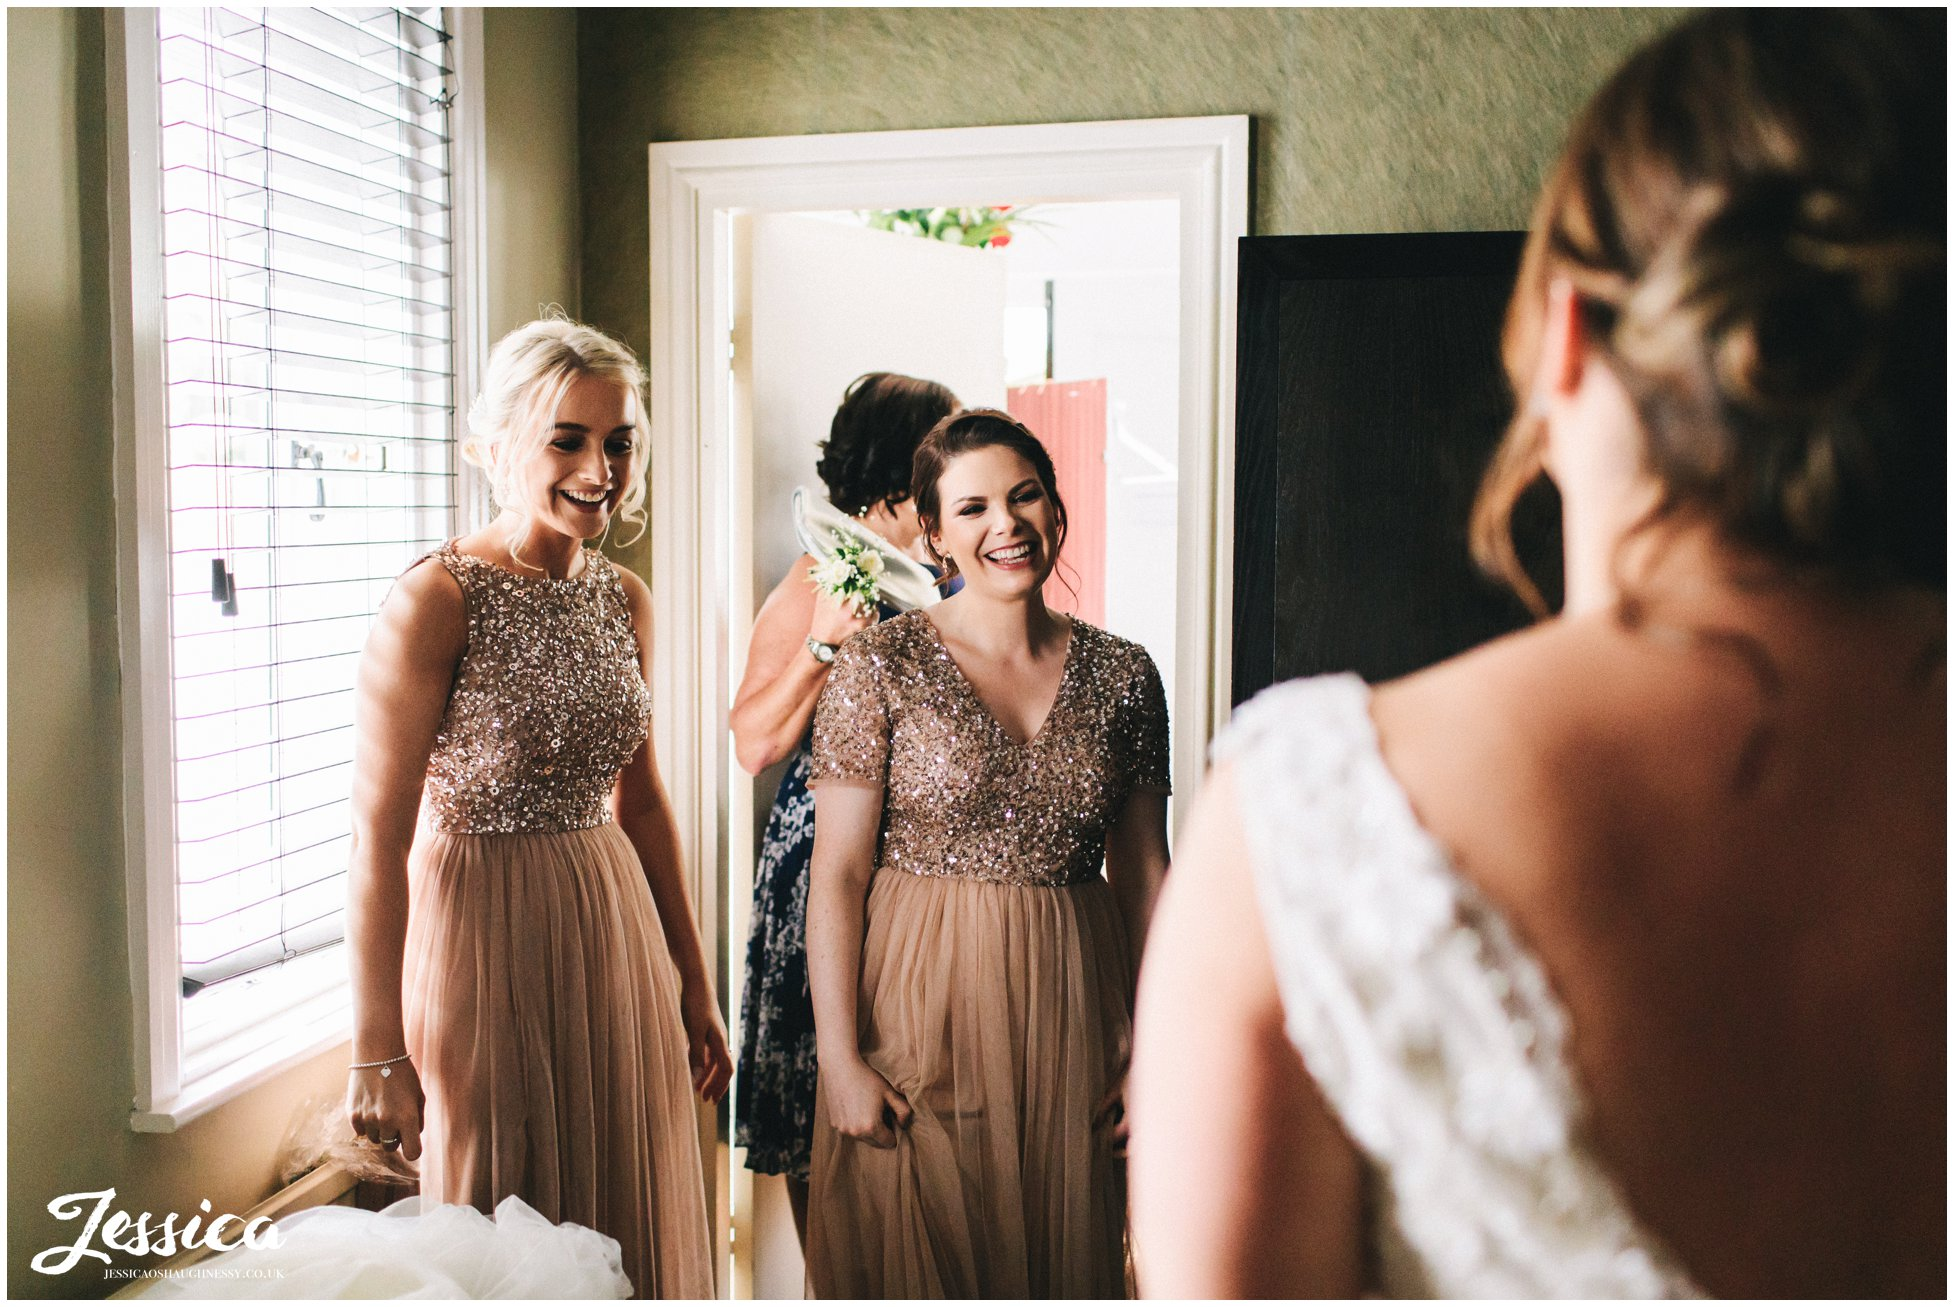 the bridesmaids look in awe after seeing the bride in her dress